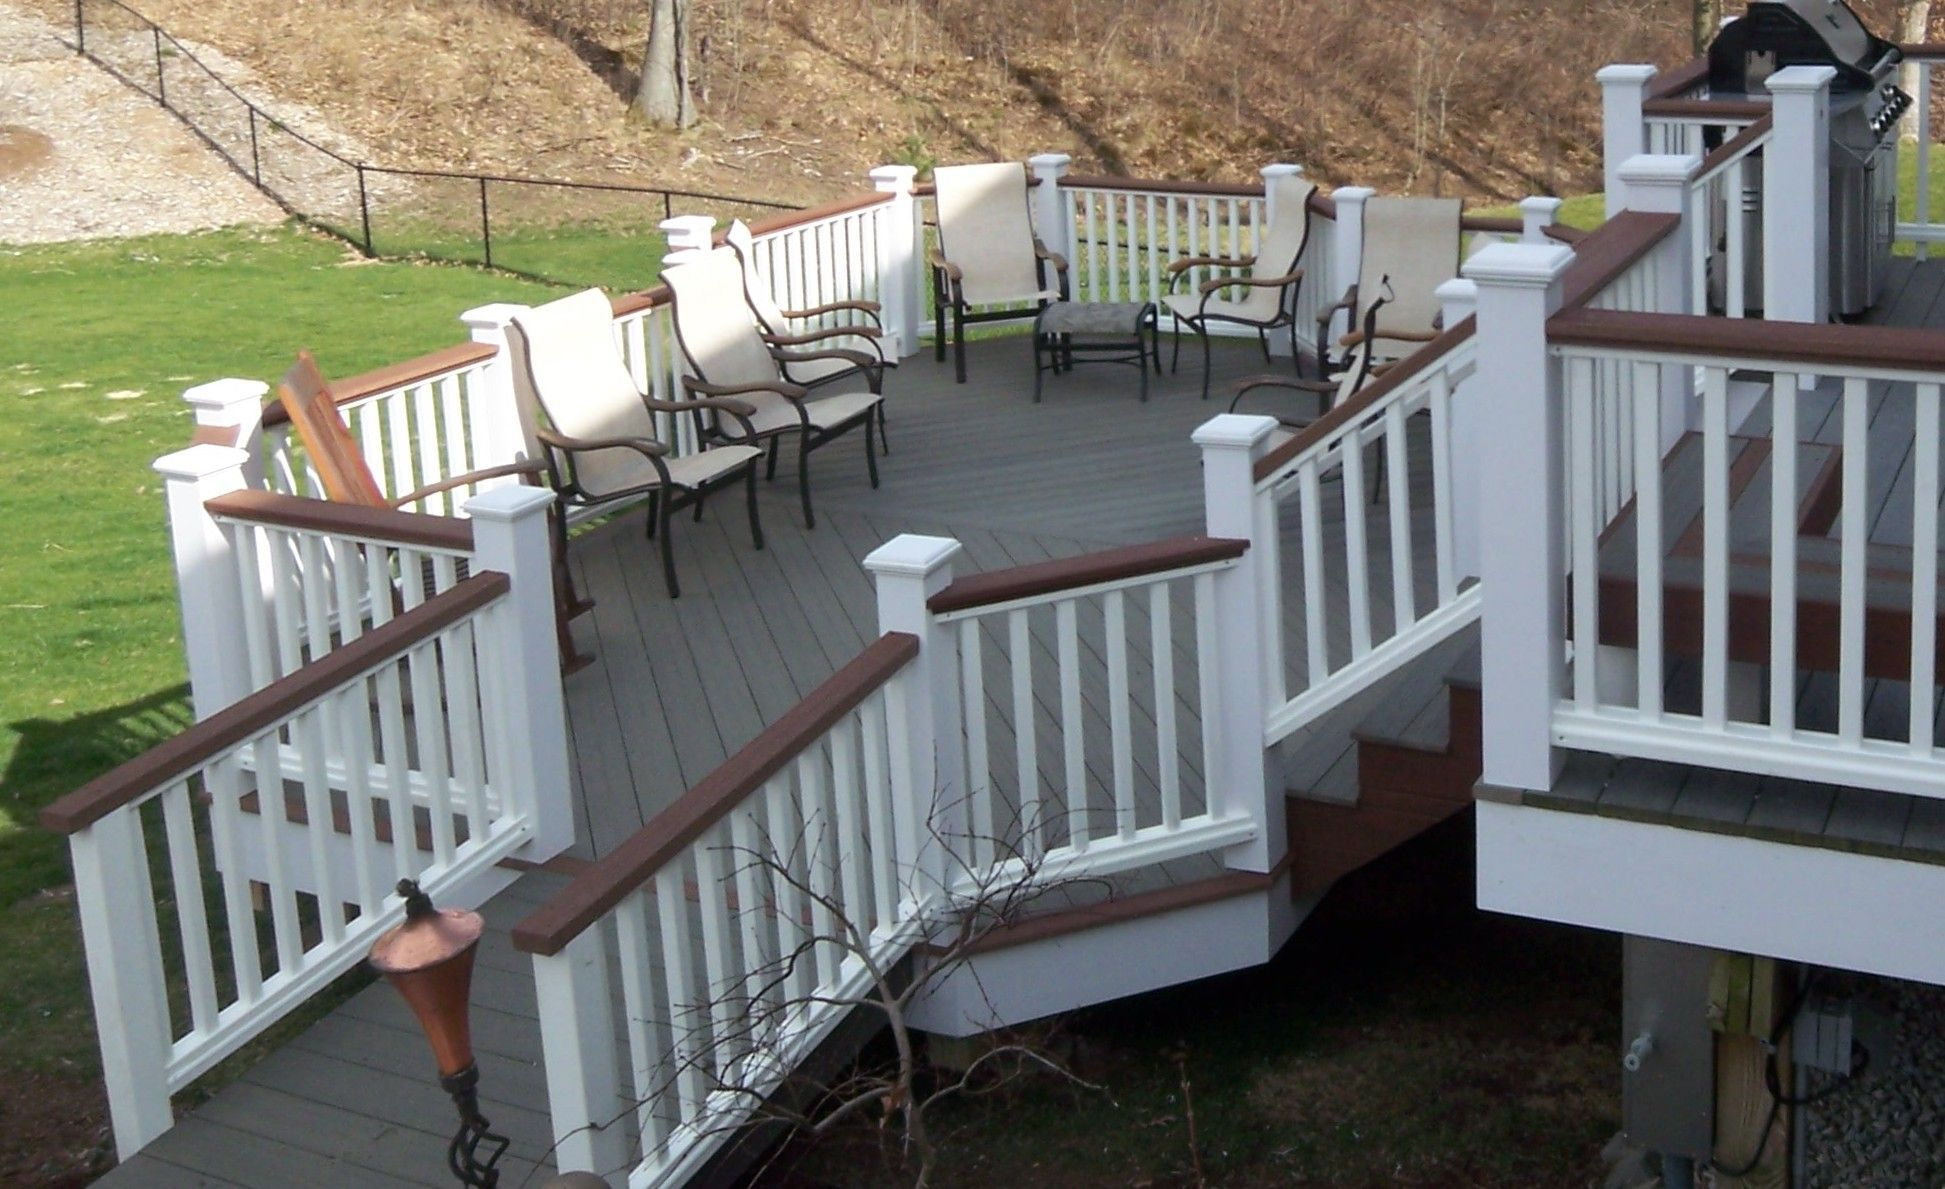 20 Insanely Cool Multi Level Deck Ideas For Your Home Trex Deck Colors Staining Deck Deck Colors